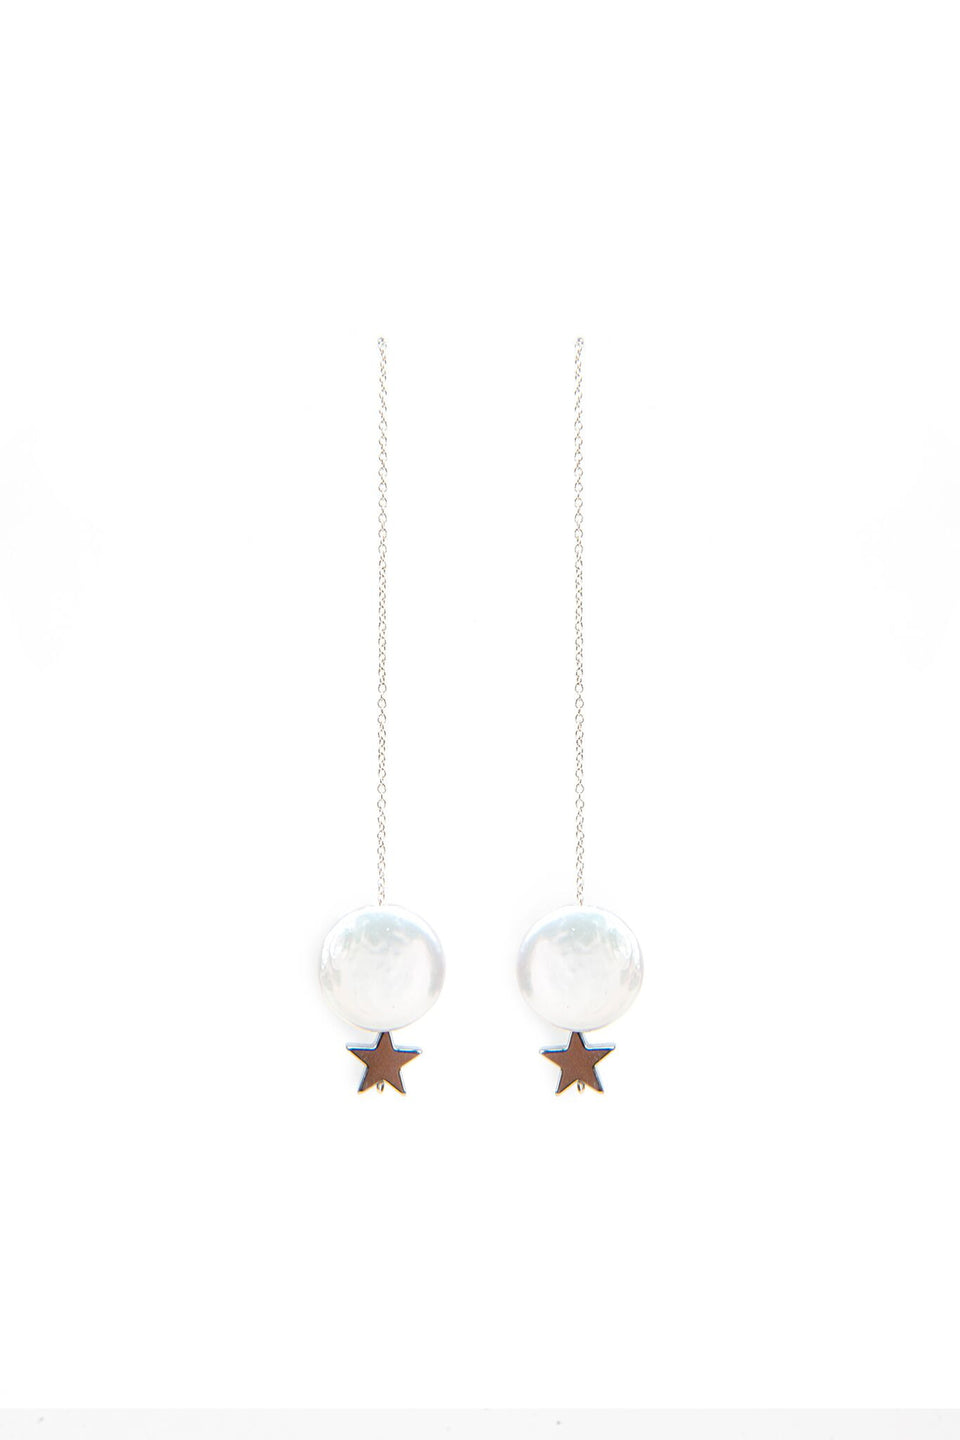 Starlet Earrings- YG